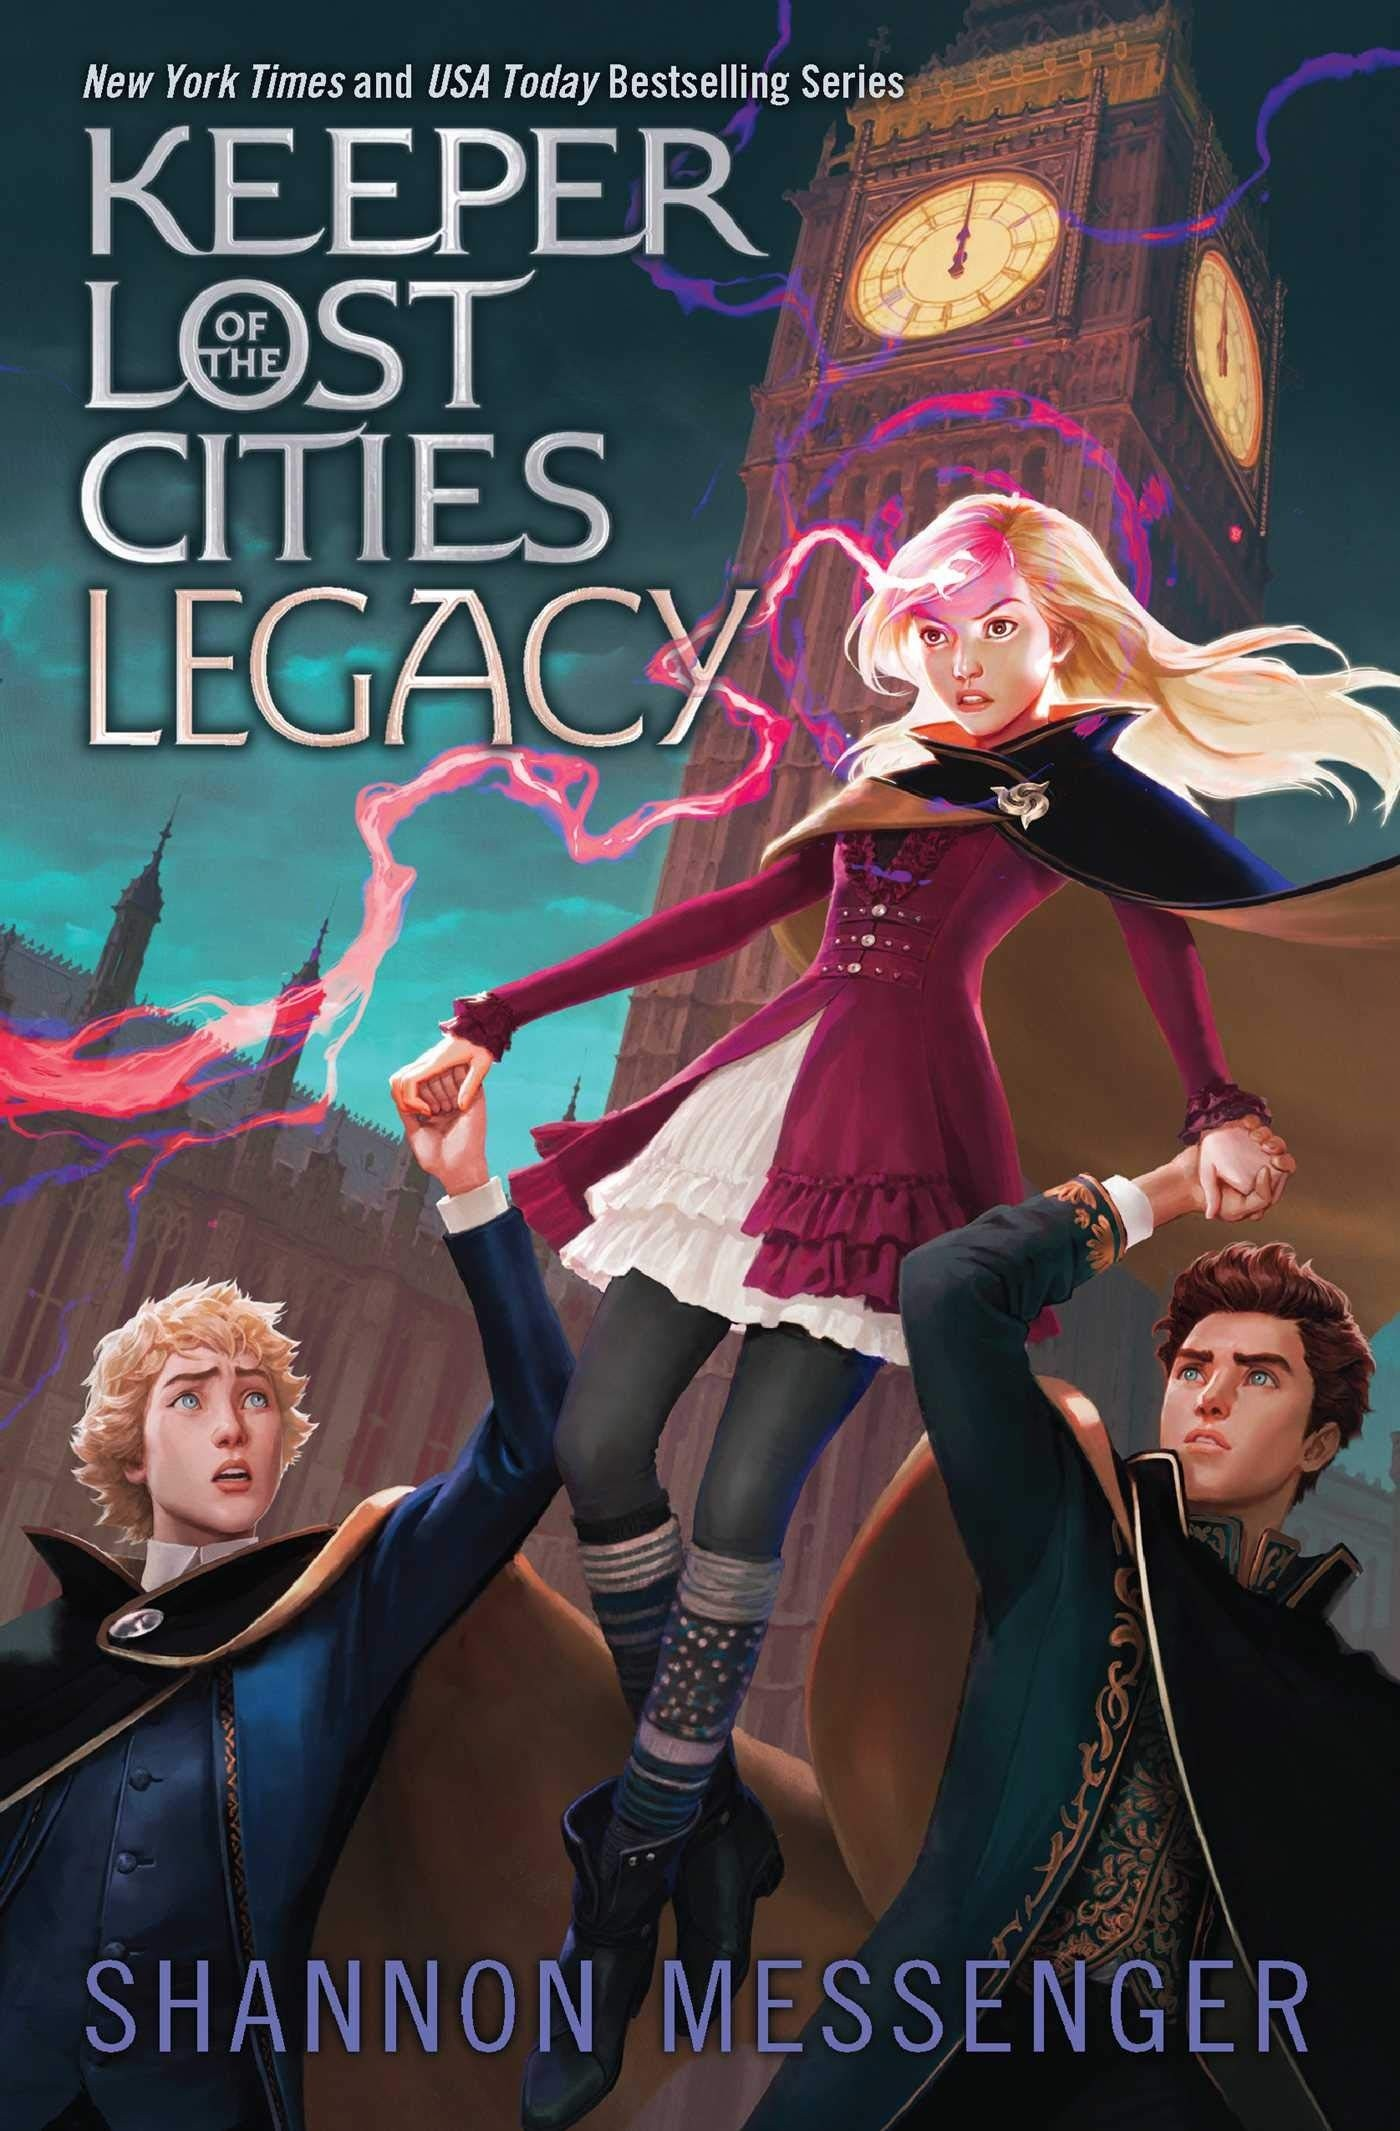 Keeper of the Lost Cities: Legacy | A Mighty Girl